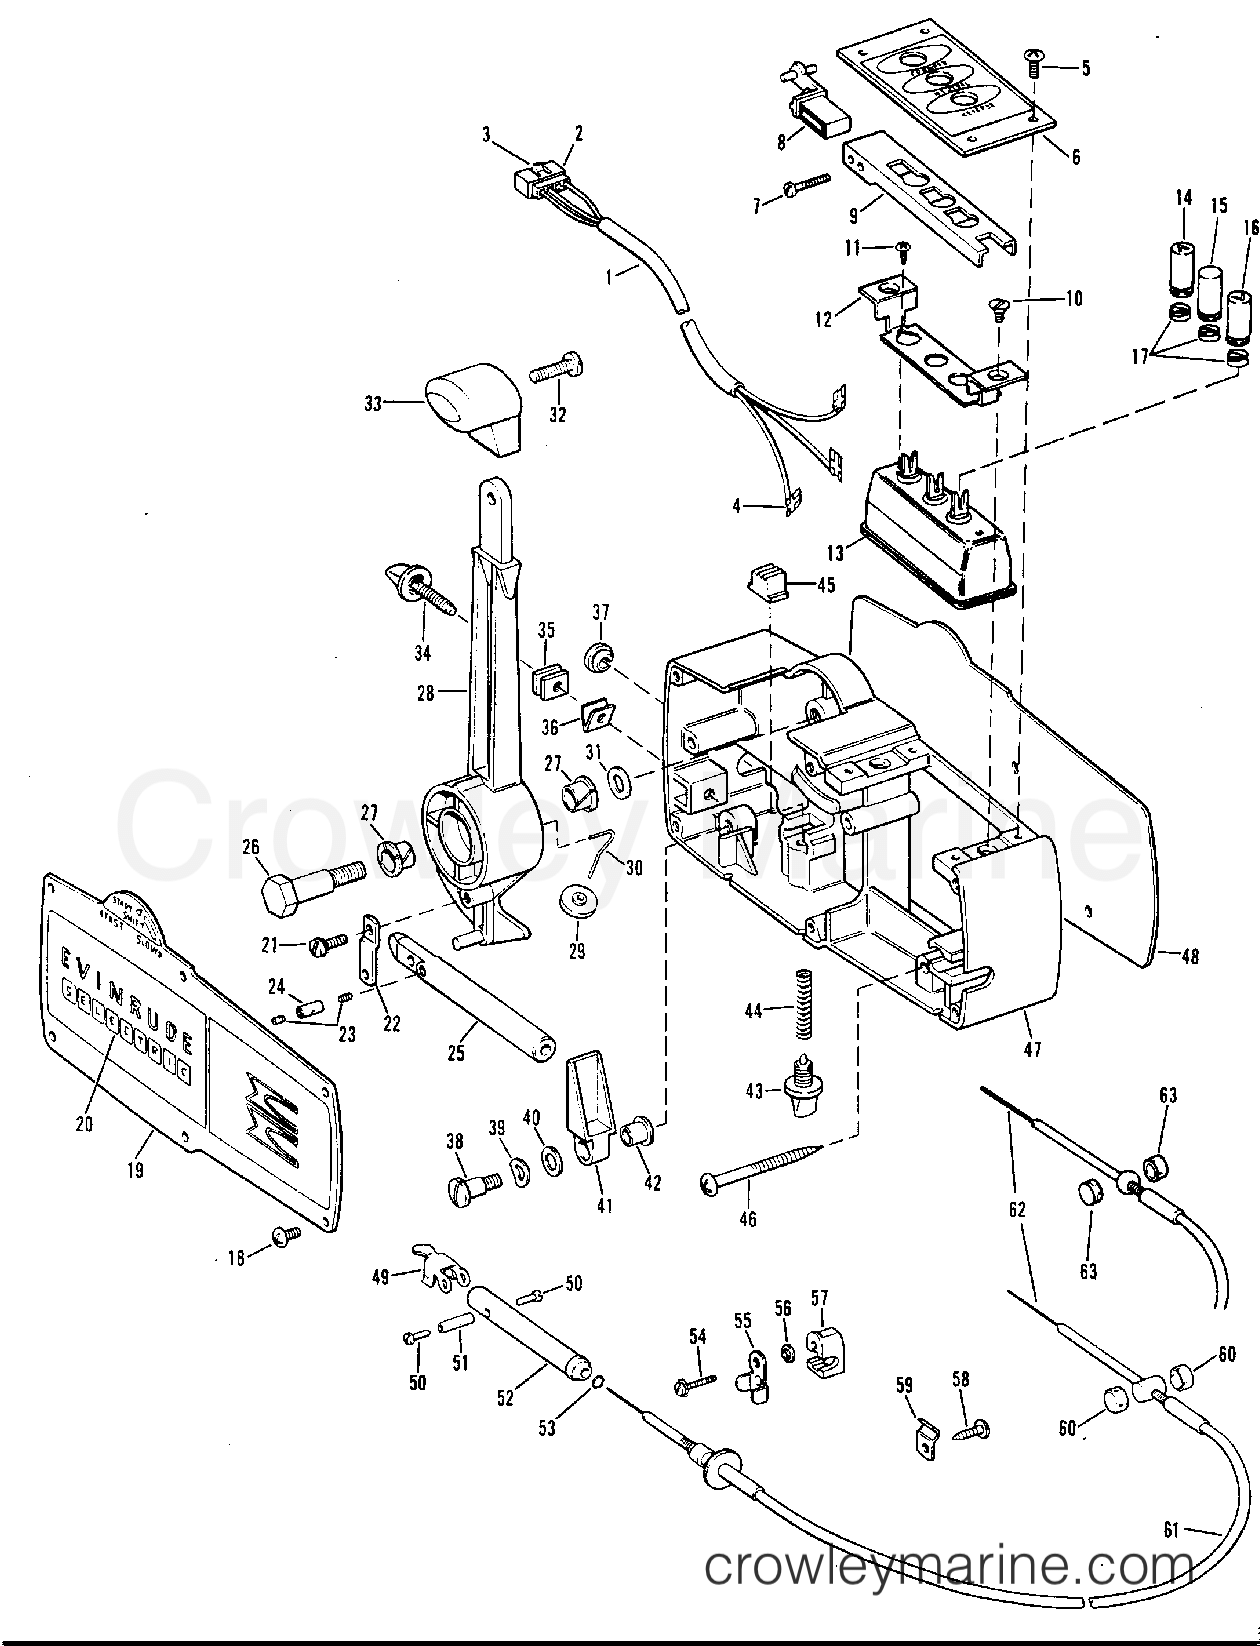 omc shifter diagram  omc  free engine image for user manual download